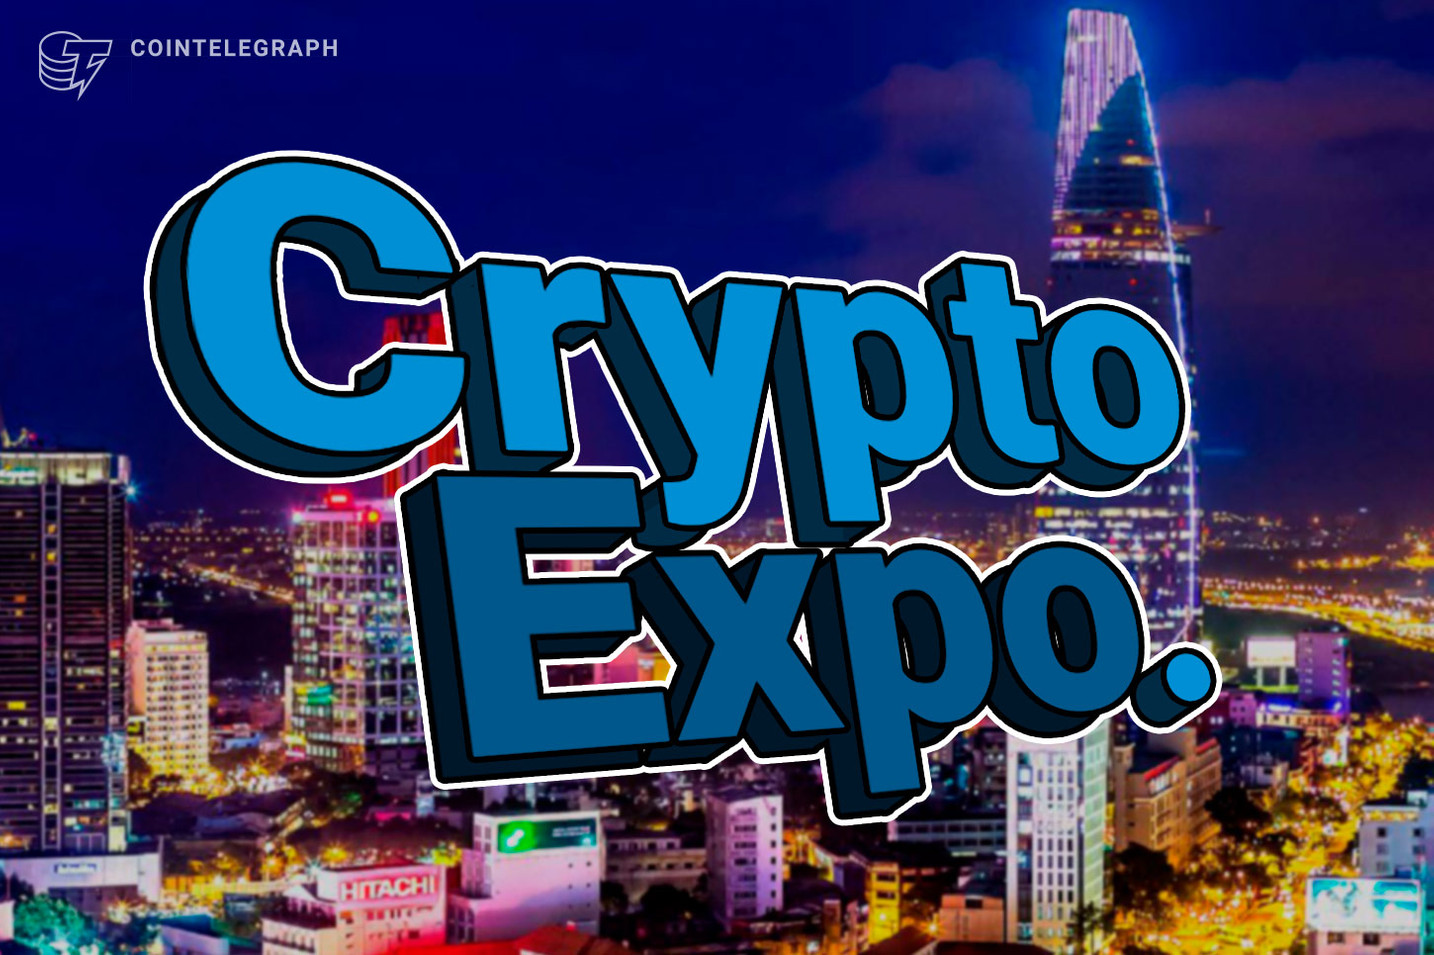 The CryptoExpo – The Biggest Event for Traders and Investors